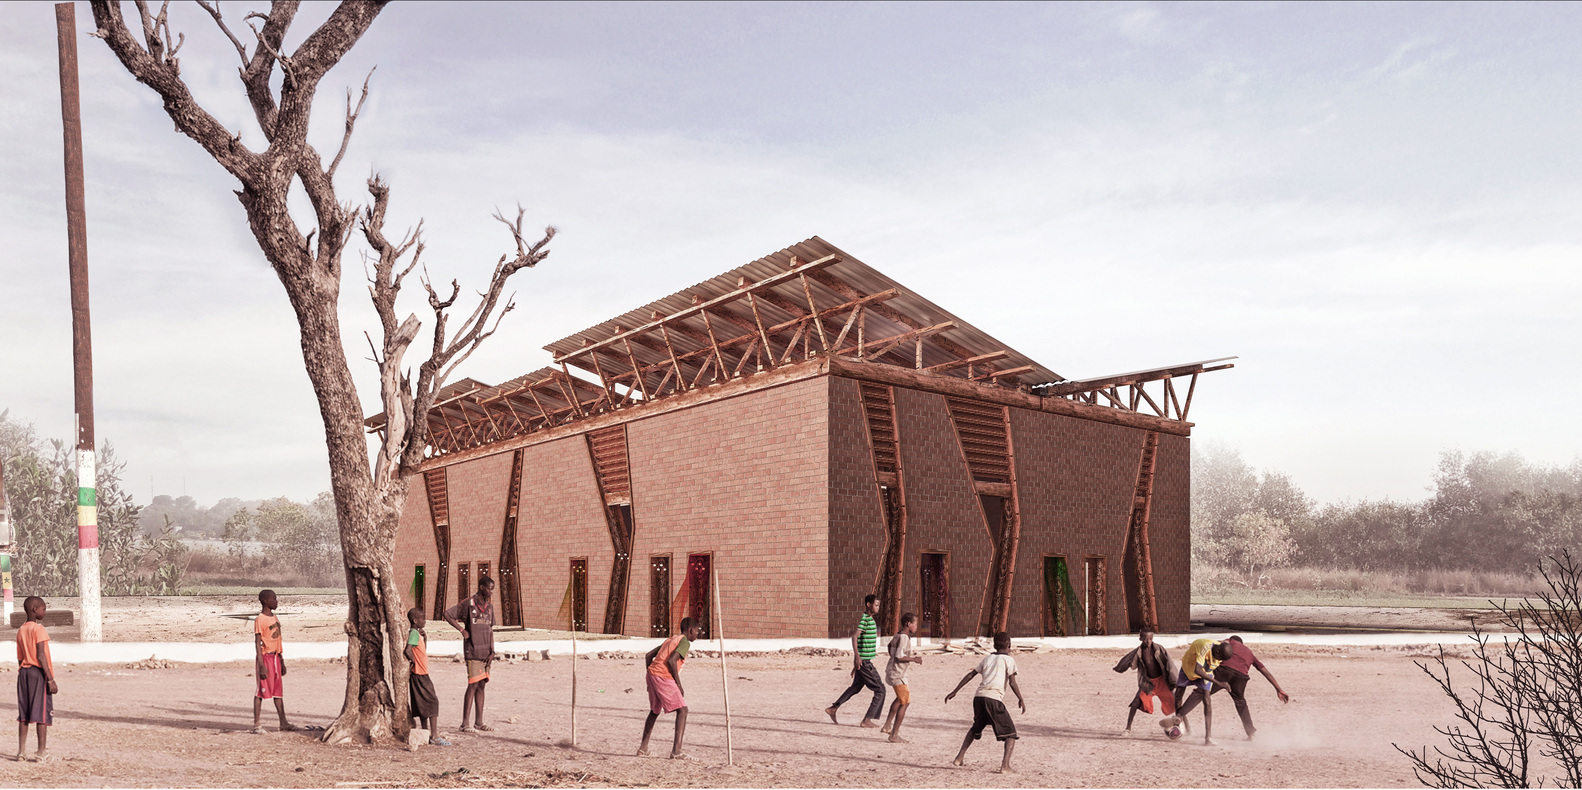 AMKNA's Ode to Africa Shortlisted for the 2018 World Architecture Festival Award